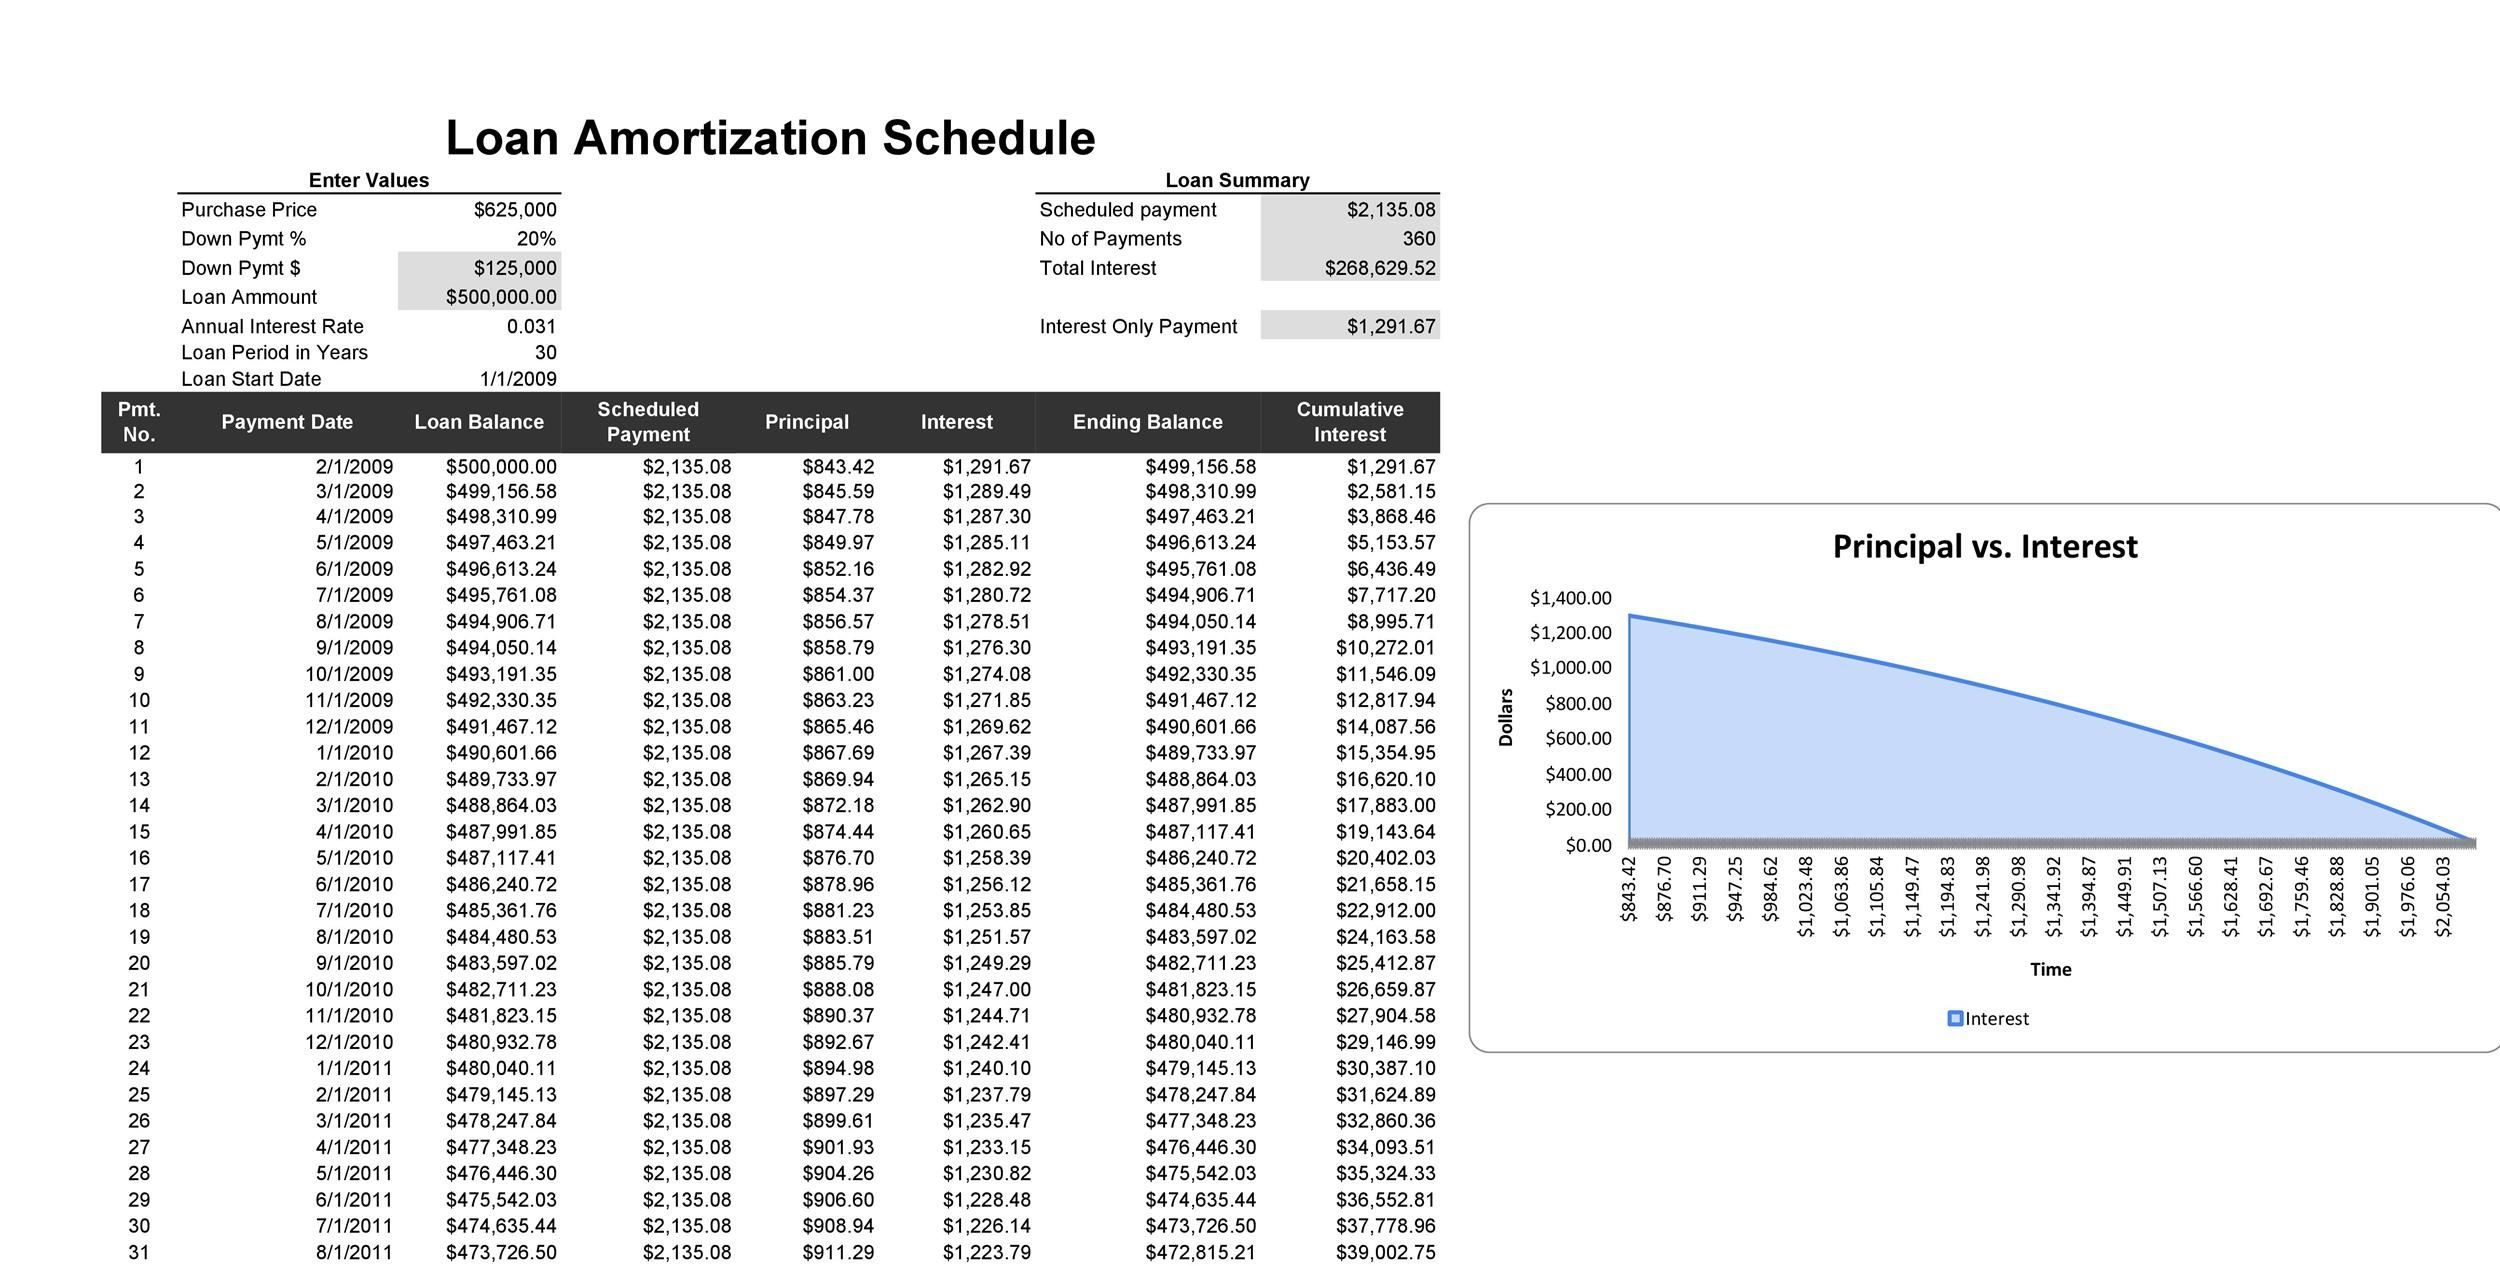 005 Fearsome Loan Amortization Template Excel Example  Schedule Free DownloadFull